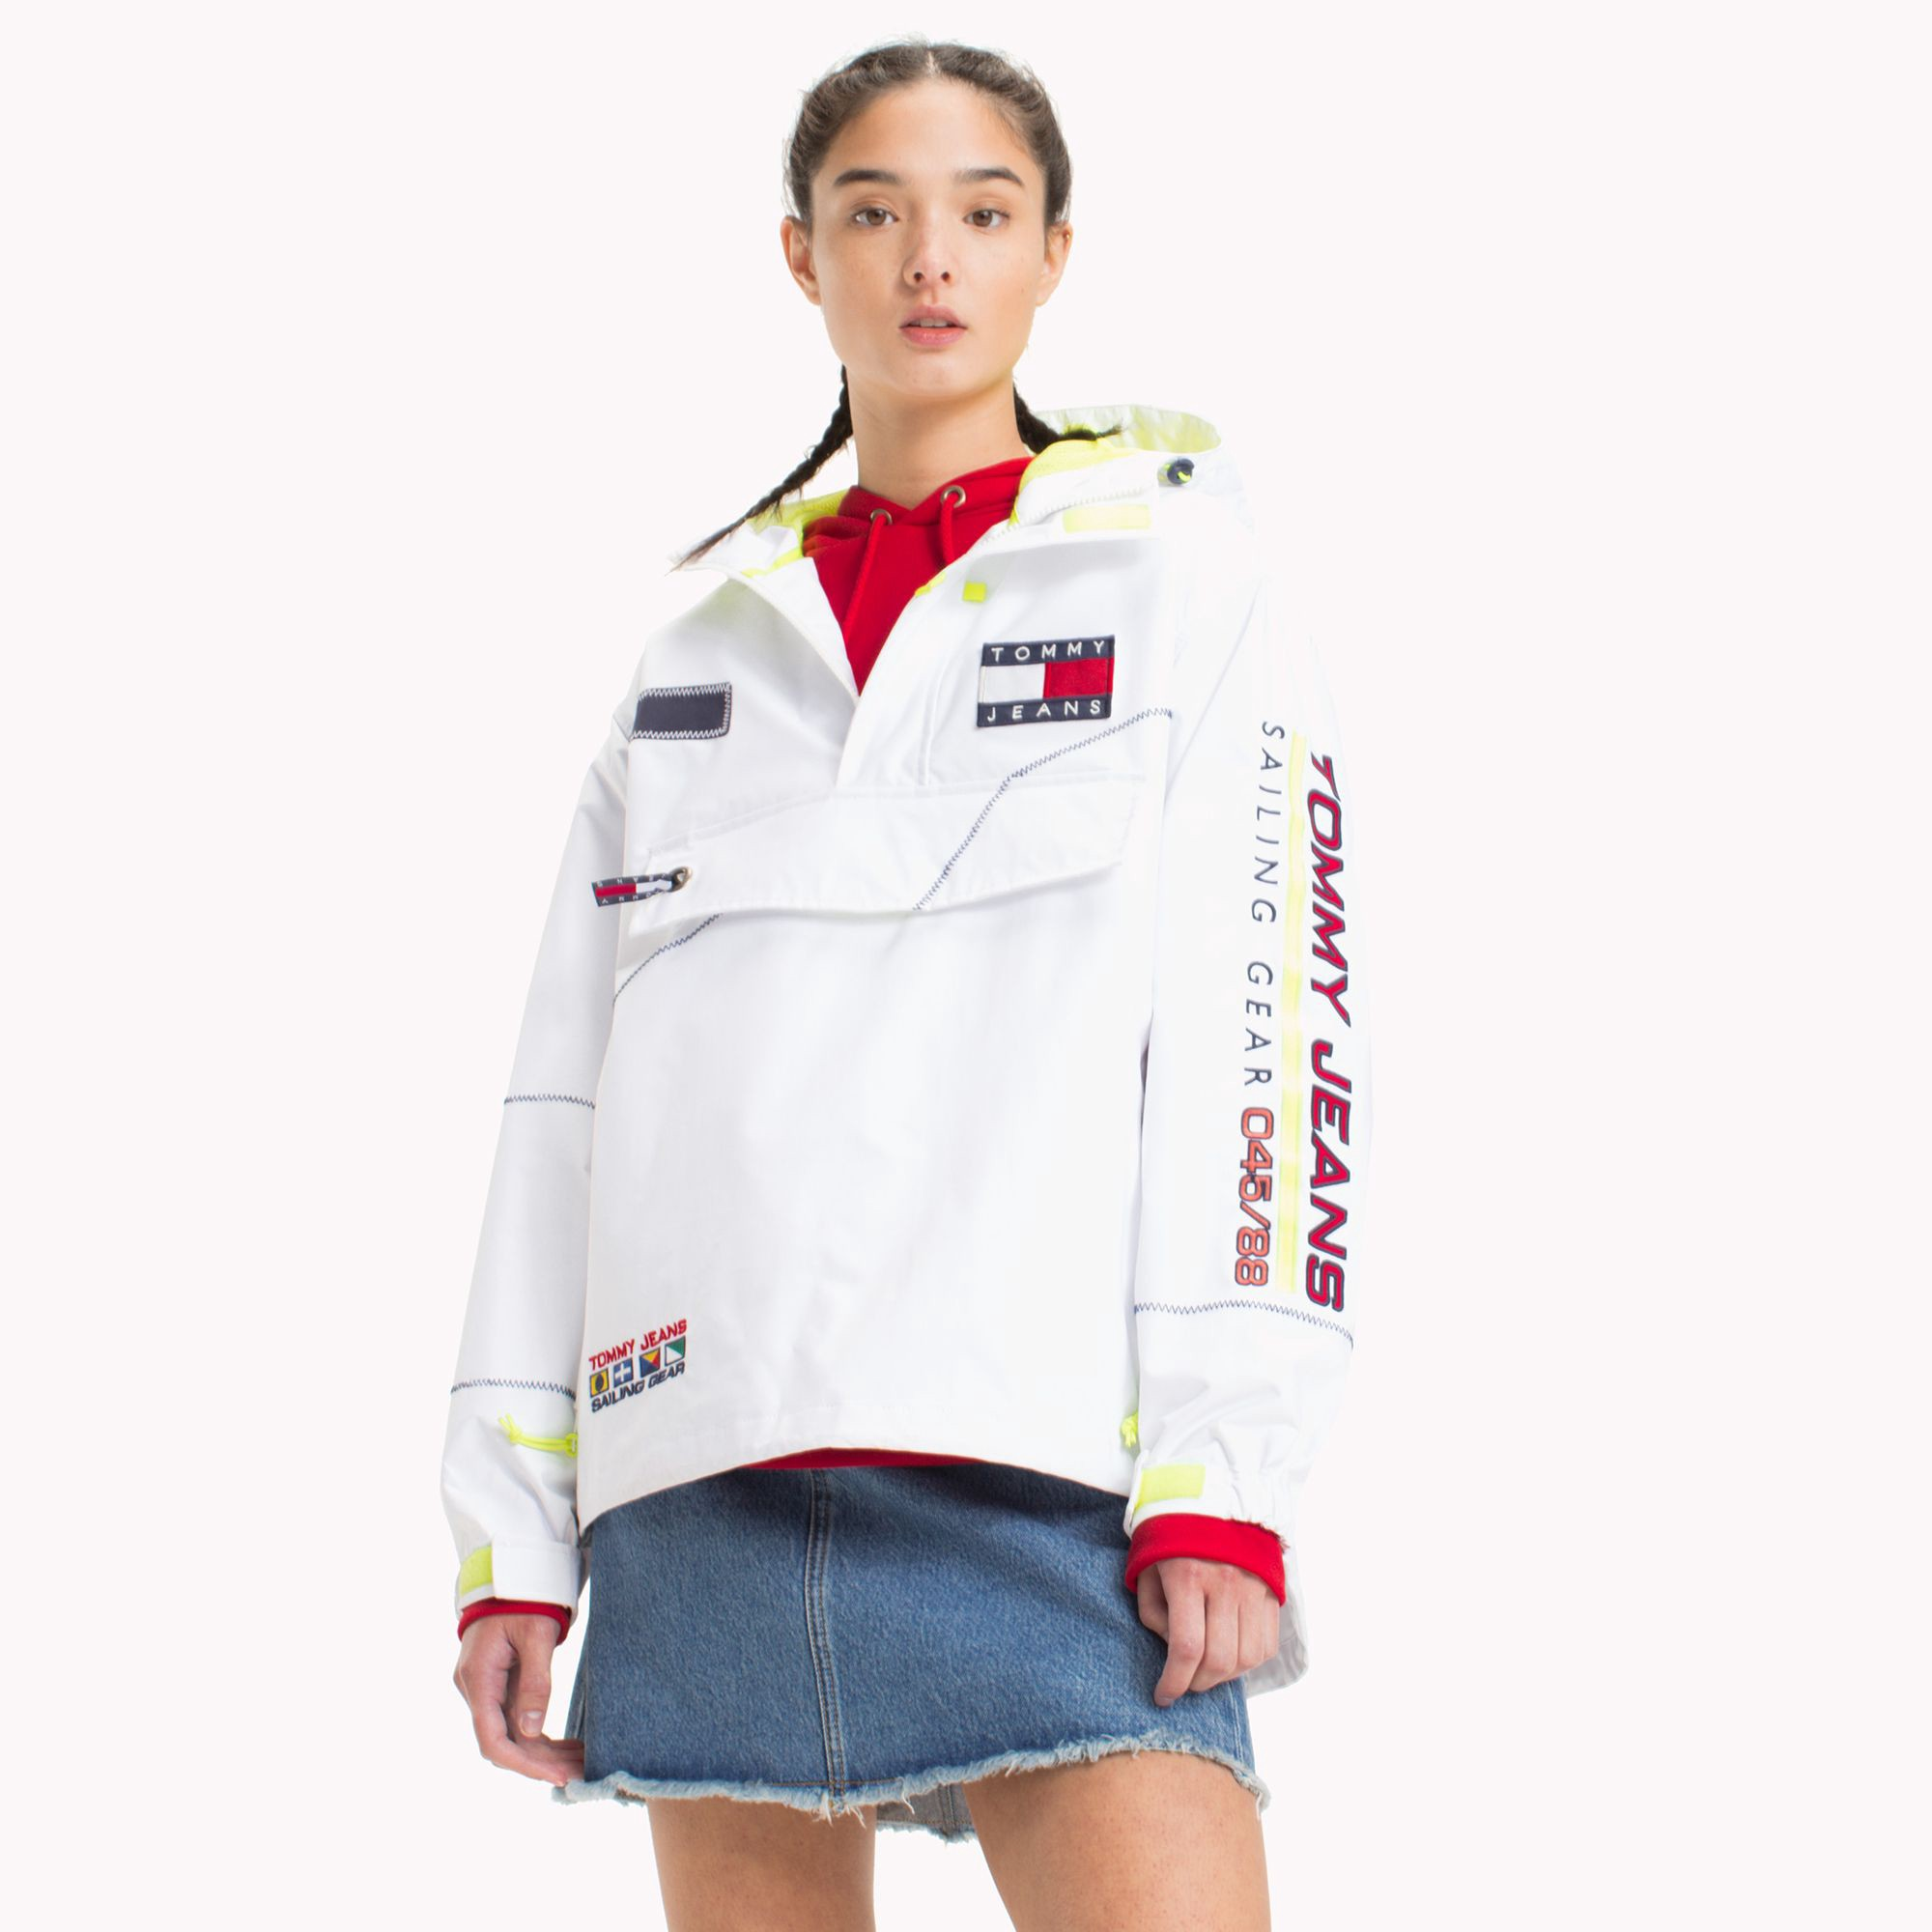 Tommy Hilfiger Capsule Collection Yacht Racing Jacket L Tommy Hilfiger Yacht Fashion Jackets For Women [ 2000 x 2000 Pixel ]